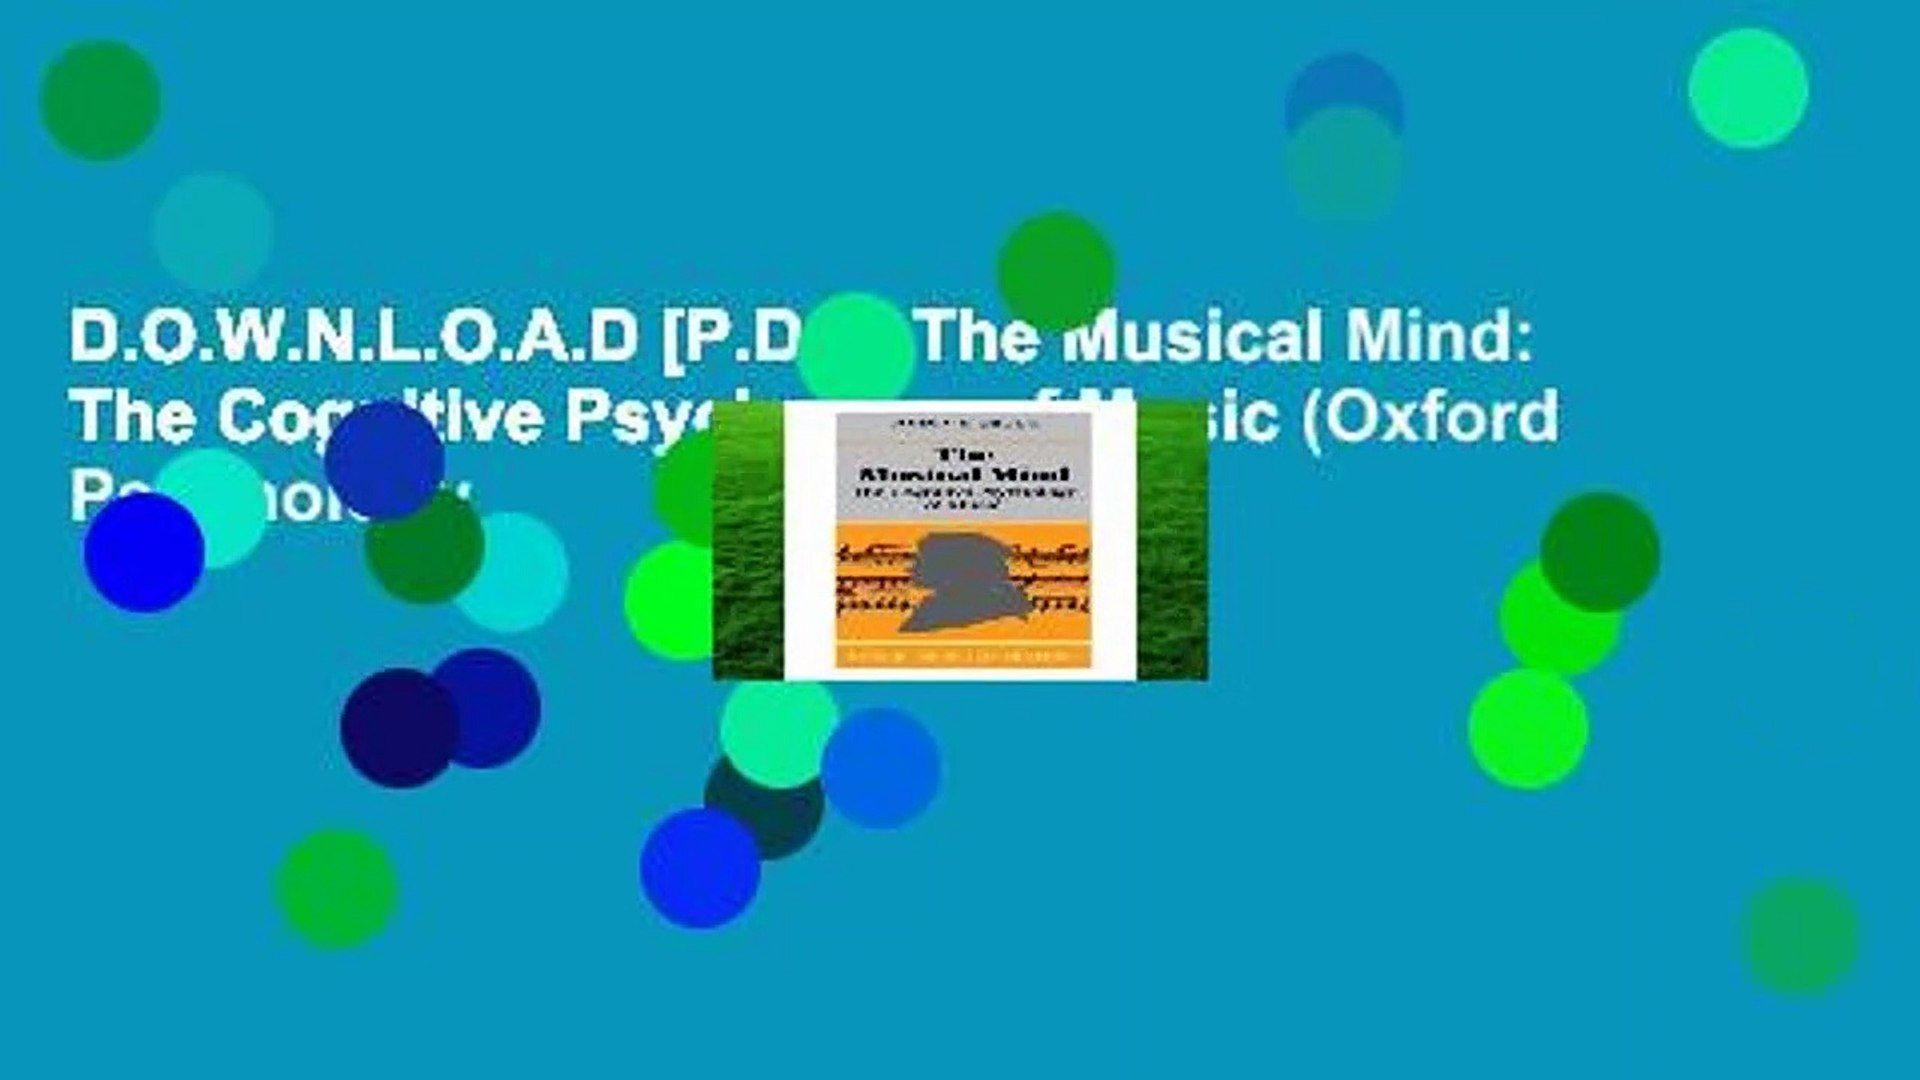 D.O.W.N.L.O.A.D [P.D.F] The Musical Mind: The Cognitive Psychology of Music (Oxford Psychology